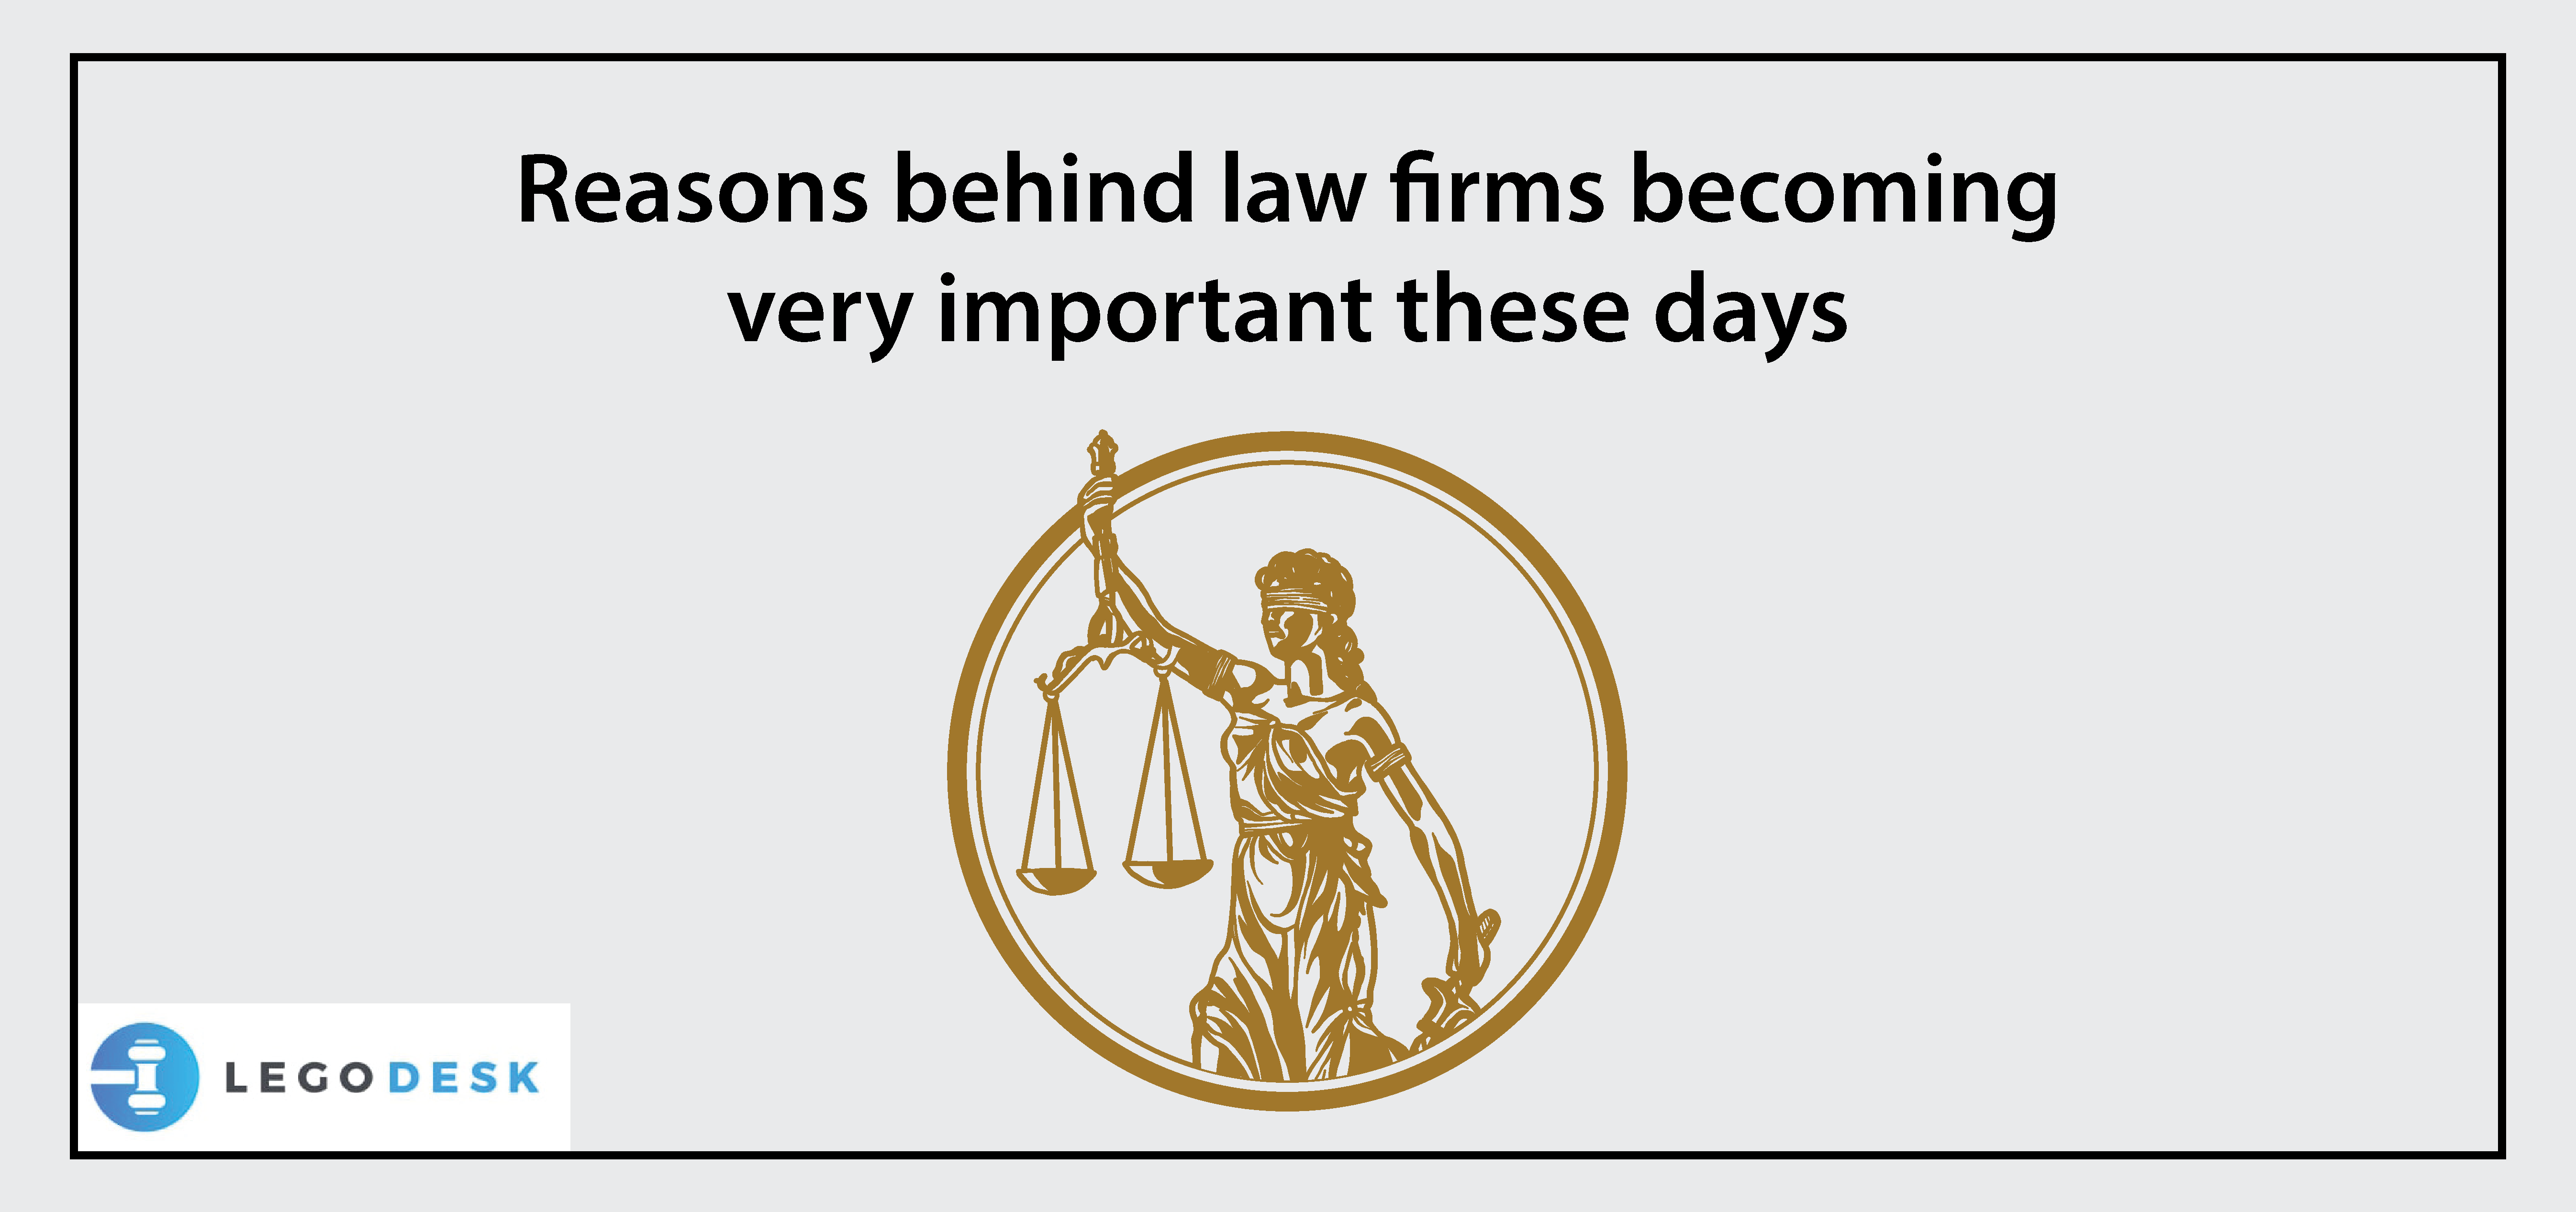 Reasons Law Firms Becoming Very Important These Days